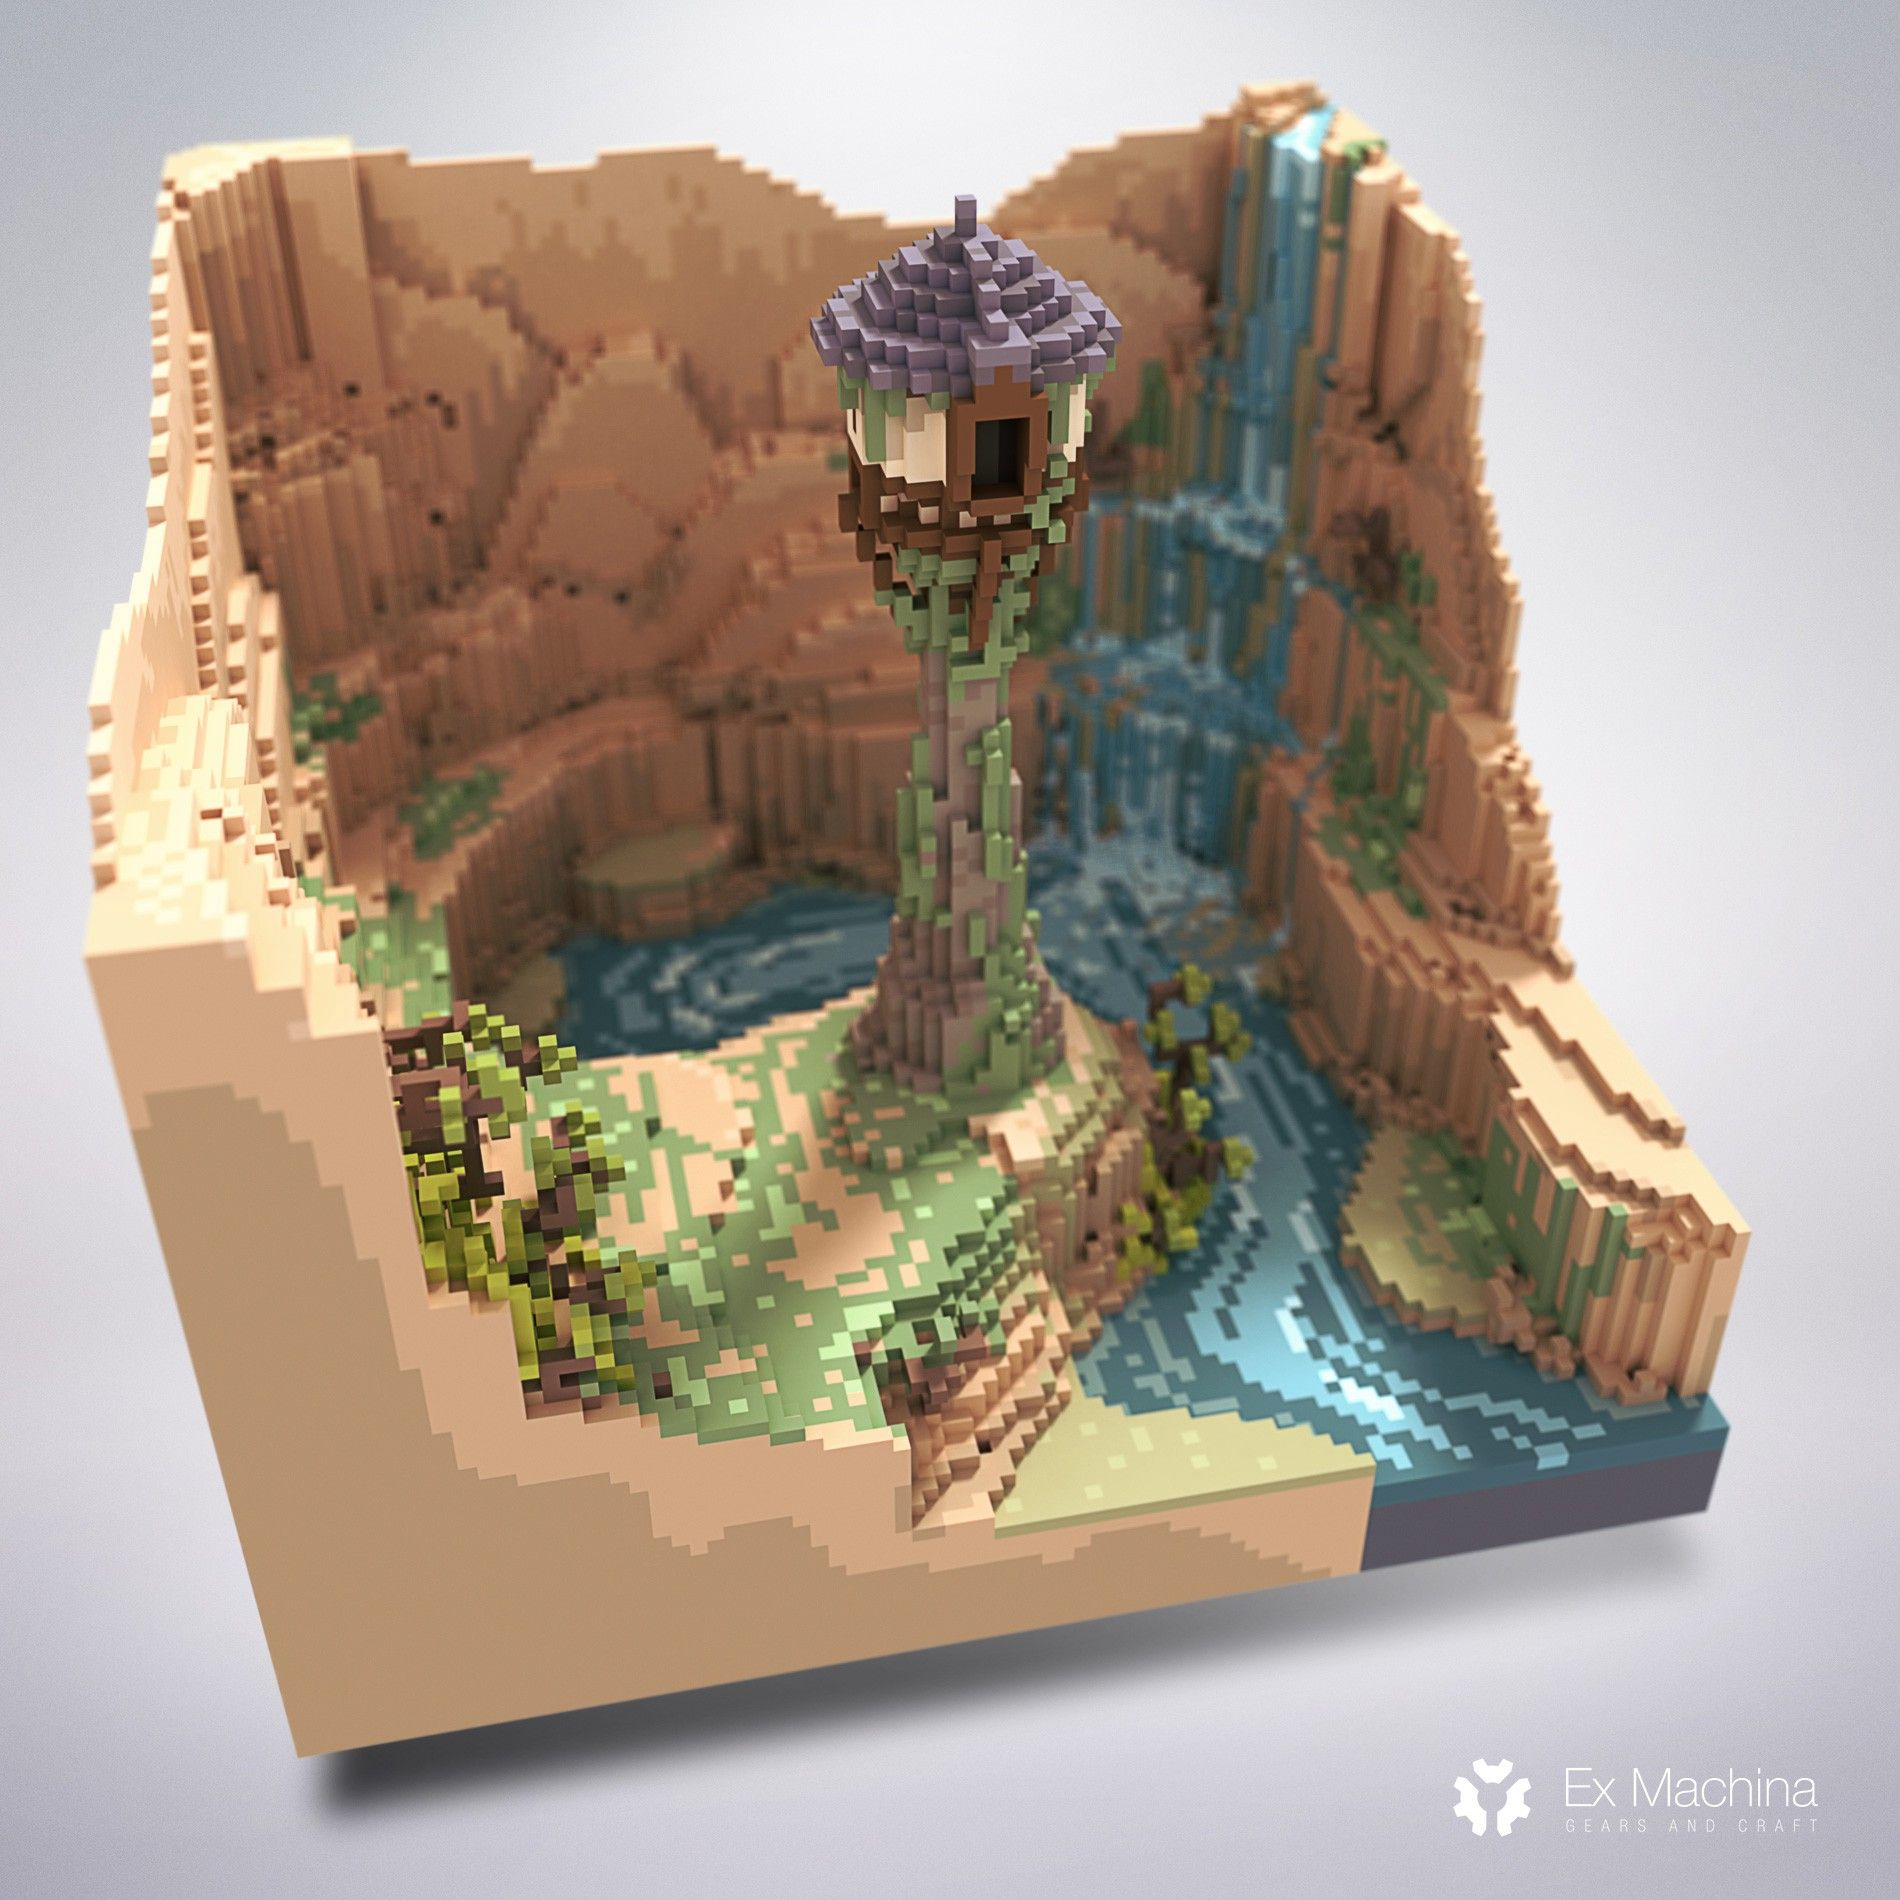 and voxels the long answer